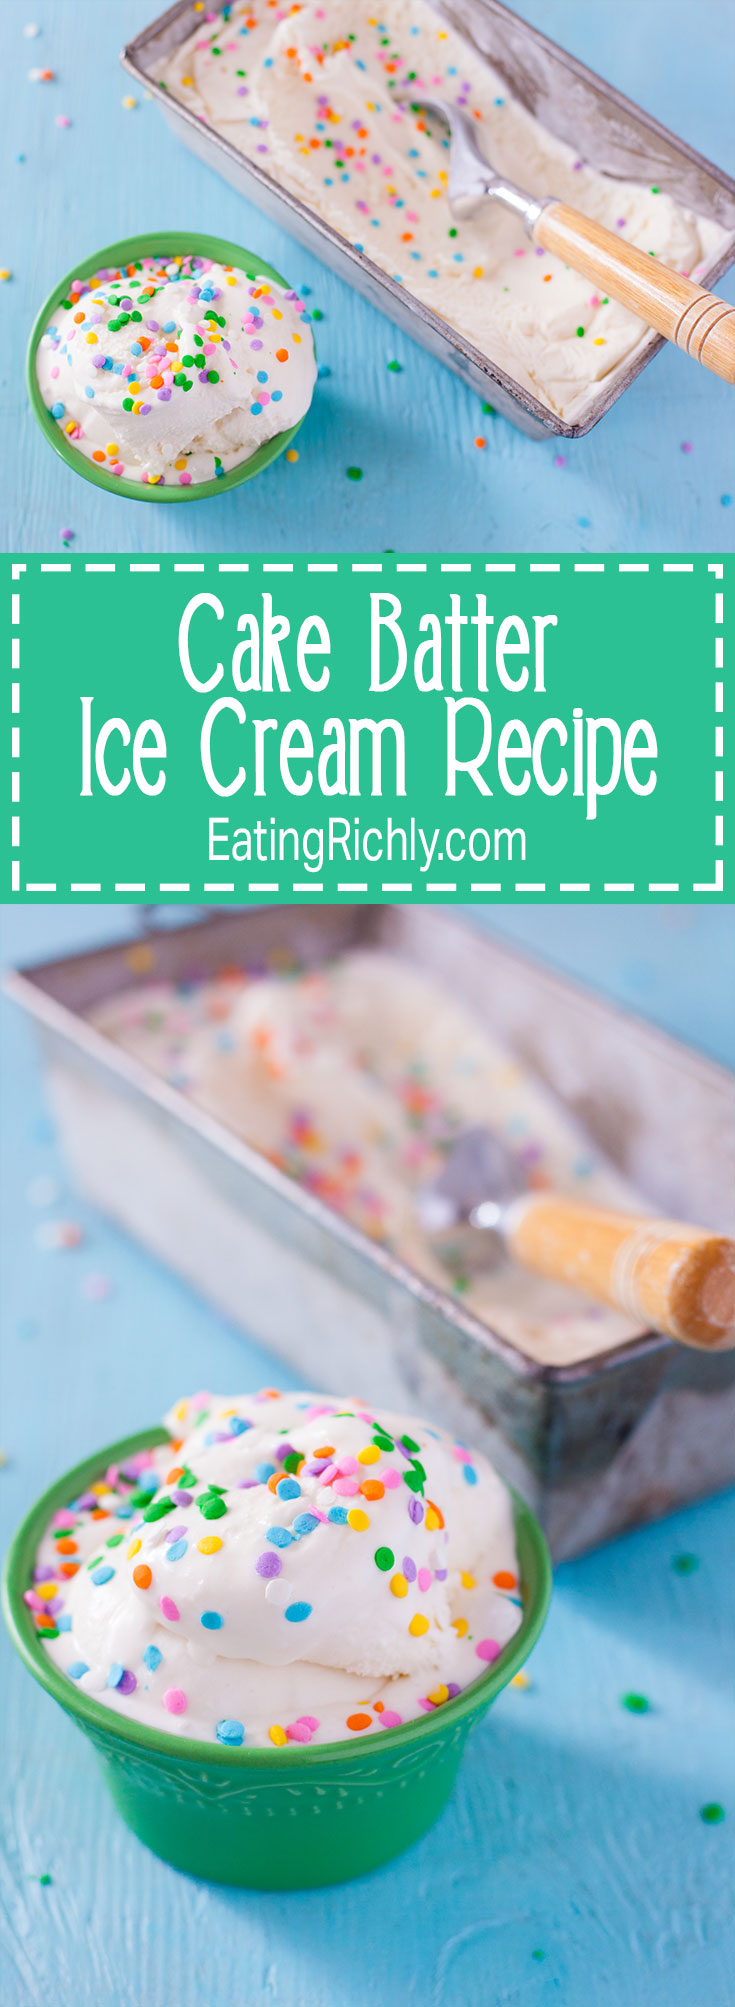 Kids can make this cake batter ice cream recipe because it doesn't require any cooking. Simply mix and churn for amazing ice cream that tastes just like birthday cake! From EatingRichly.com